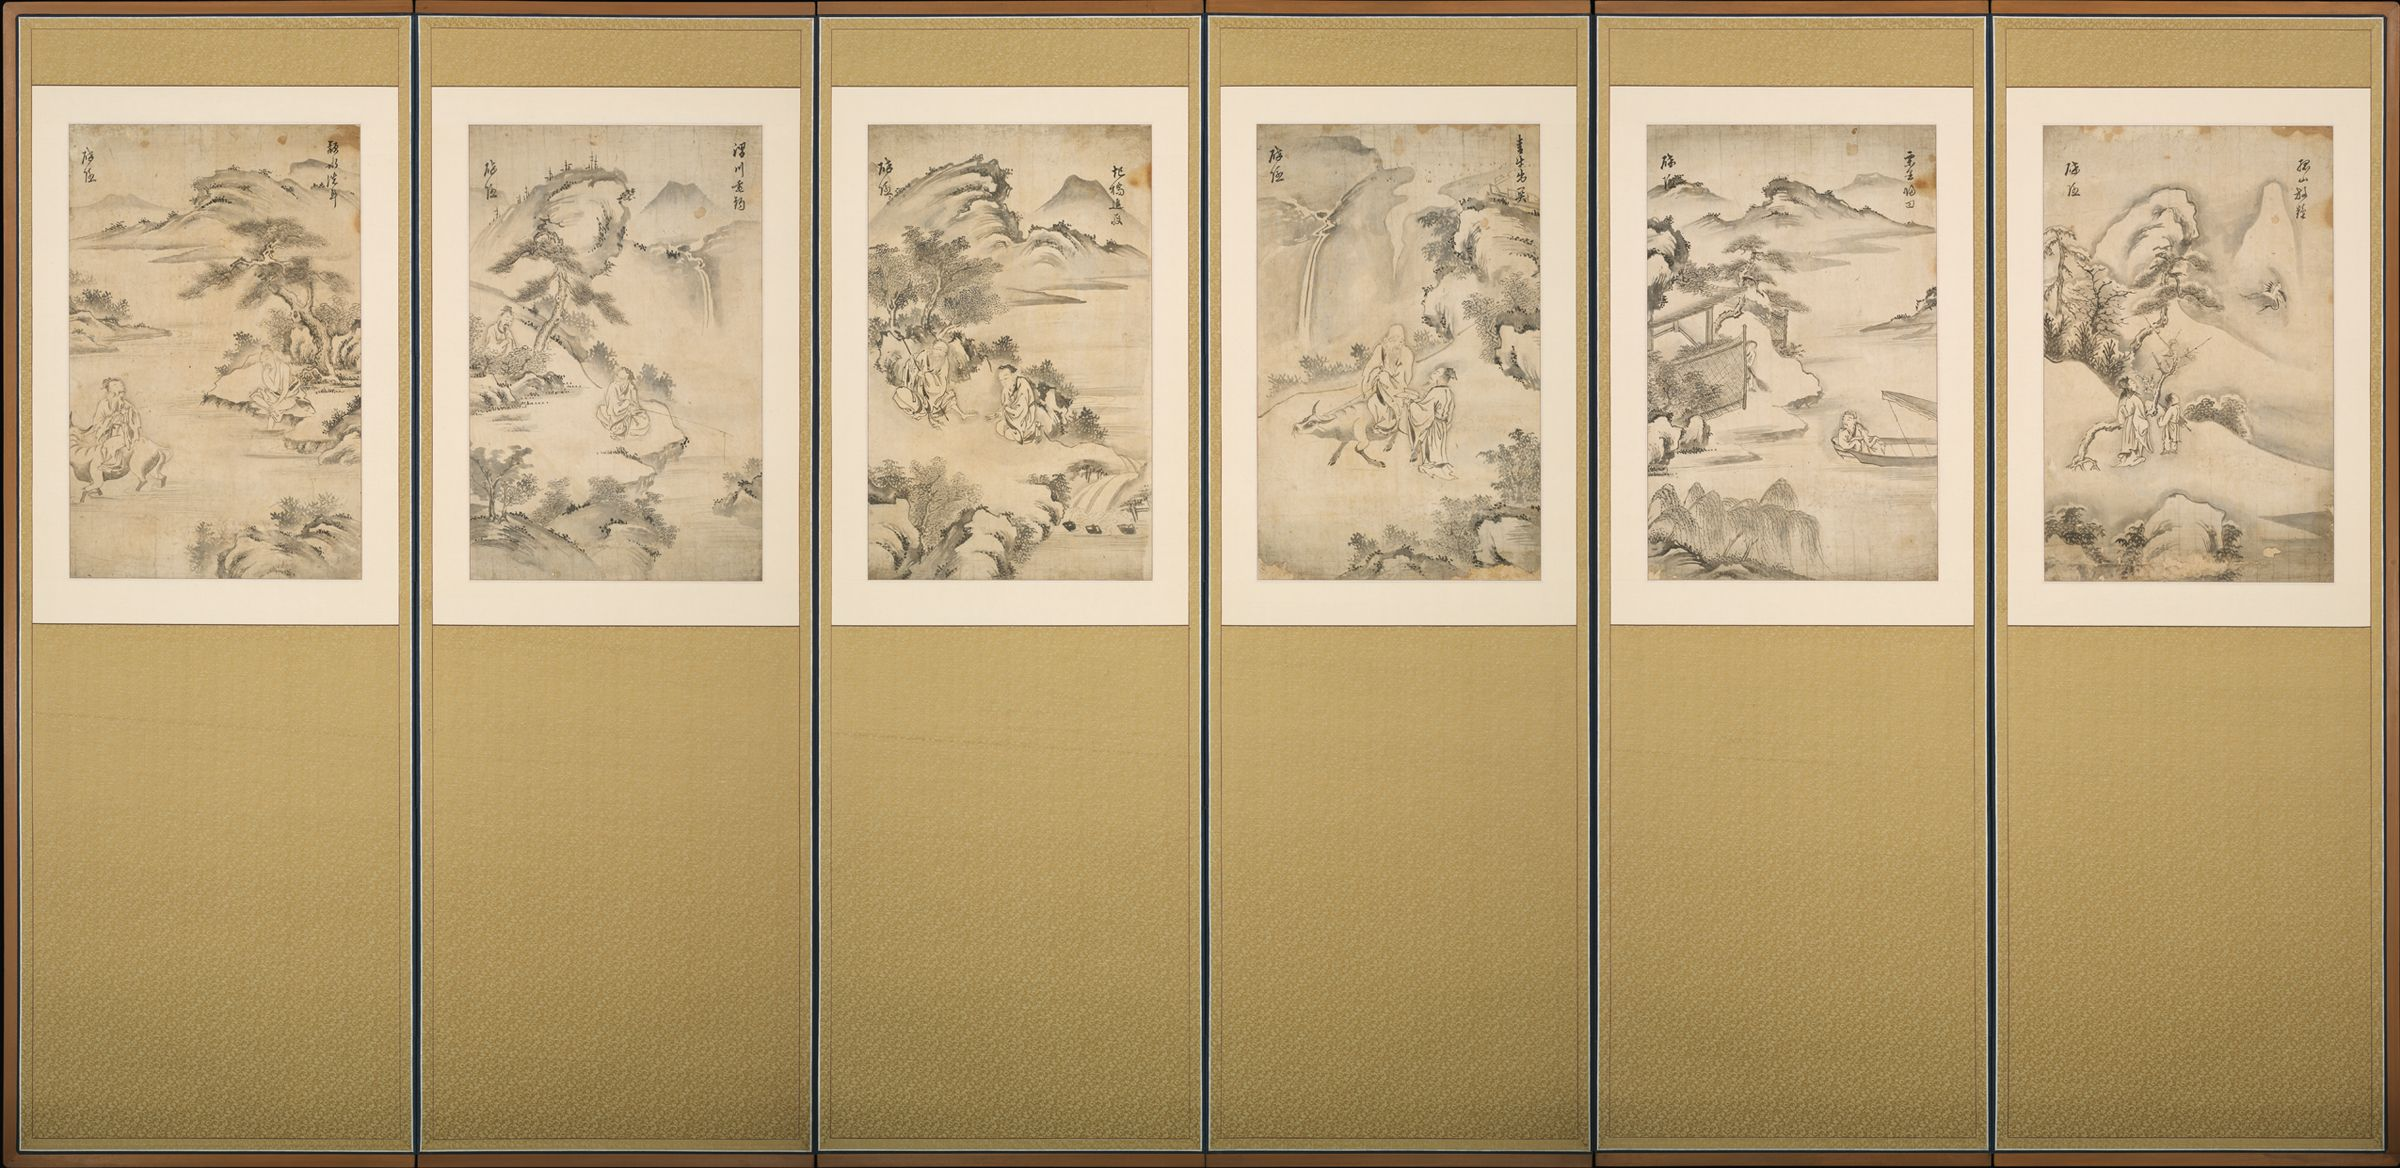 Six Legendary Chinese Sages In Landscapes